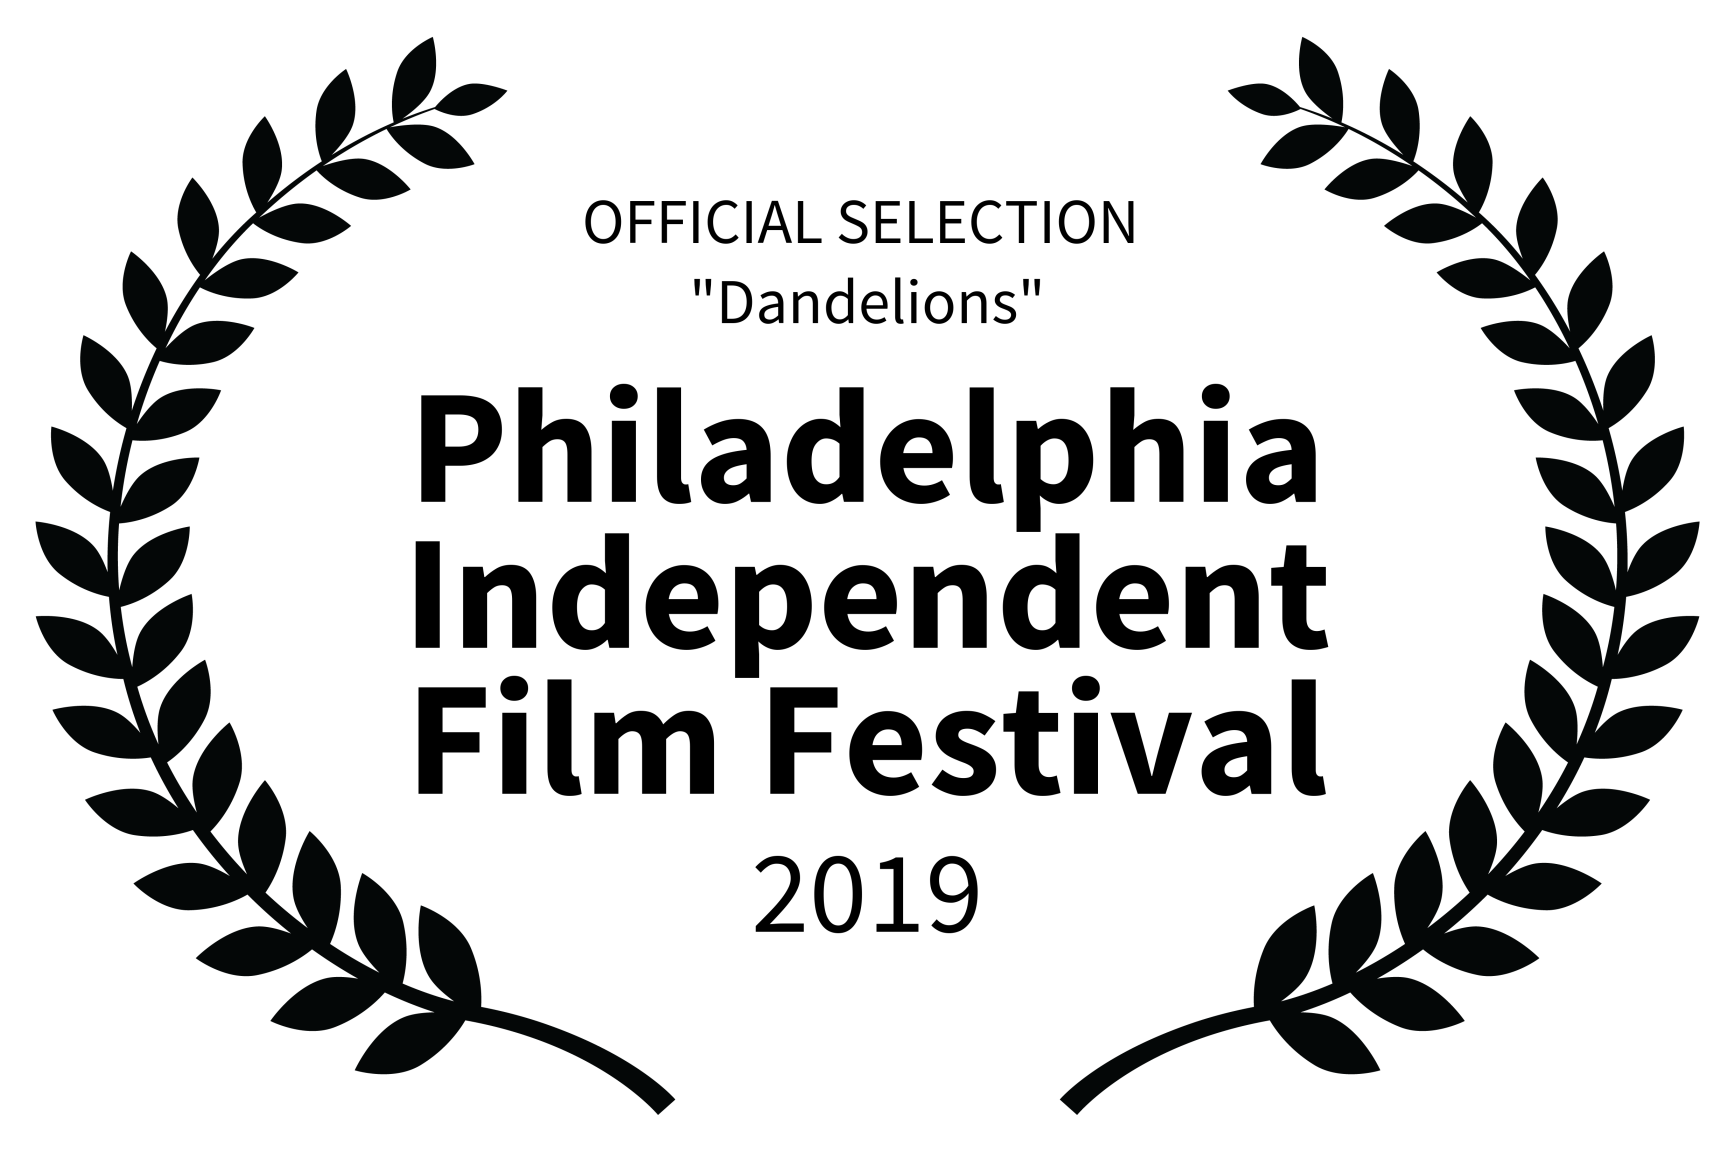 OFFICIAL SELECTION  Dandelions - Philadelphia Independent Film Festival - 2019_BLK TEXT.png